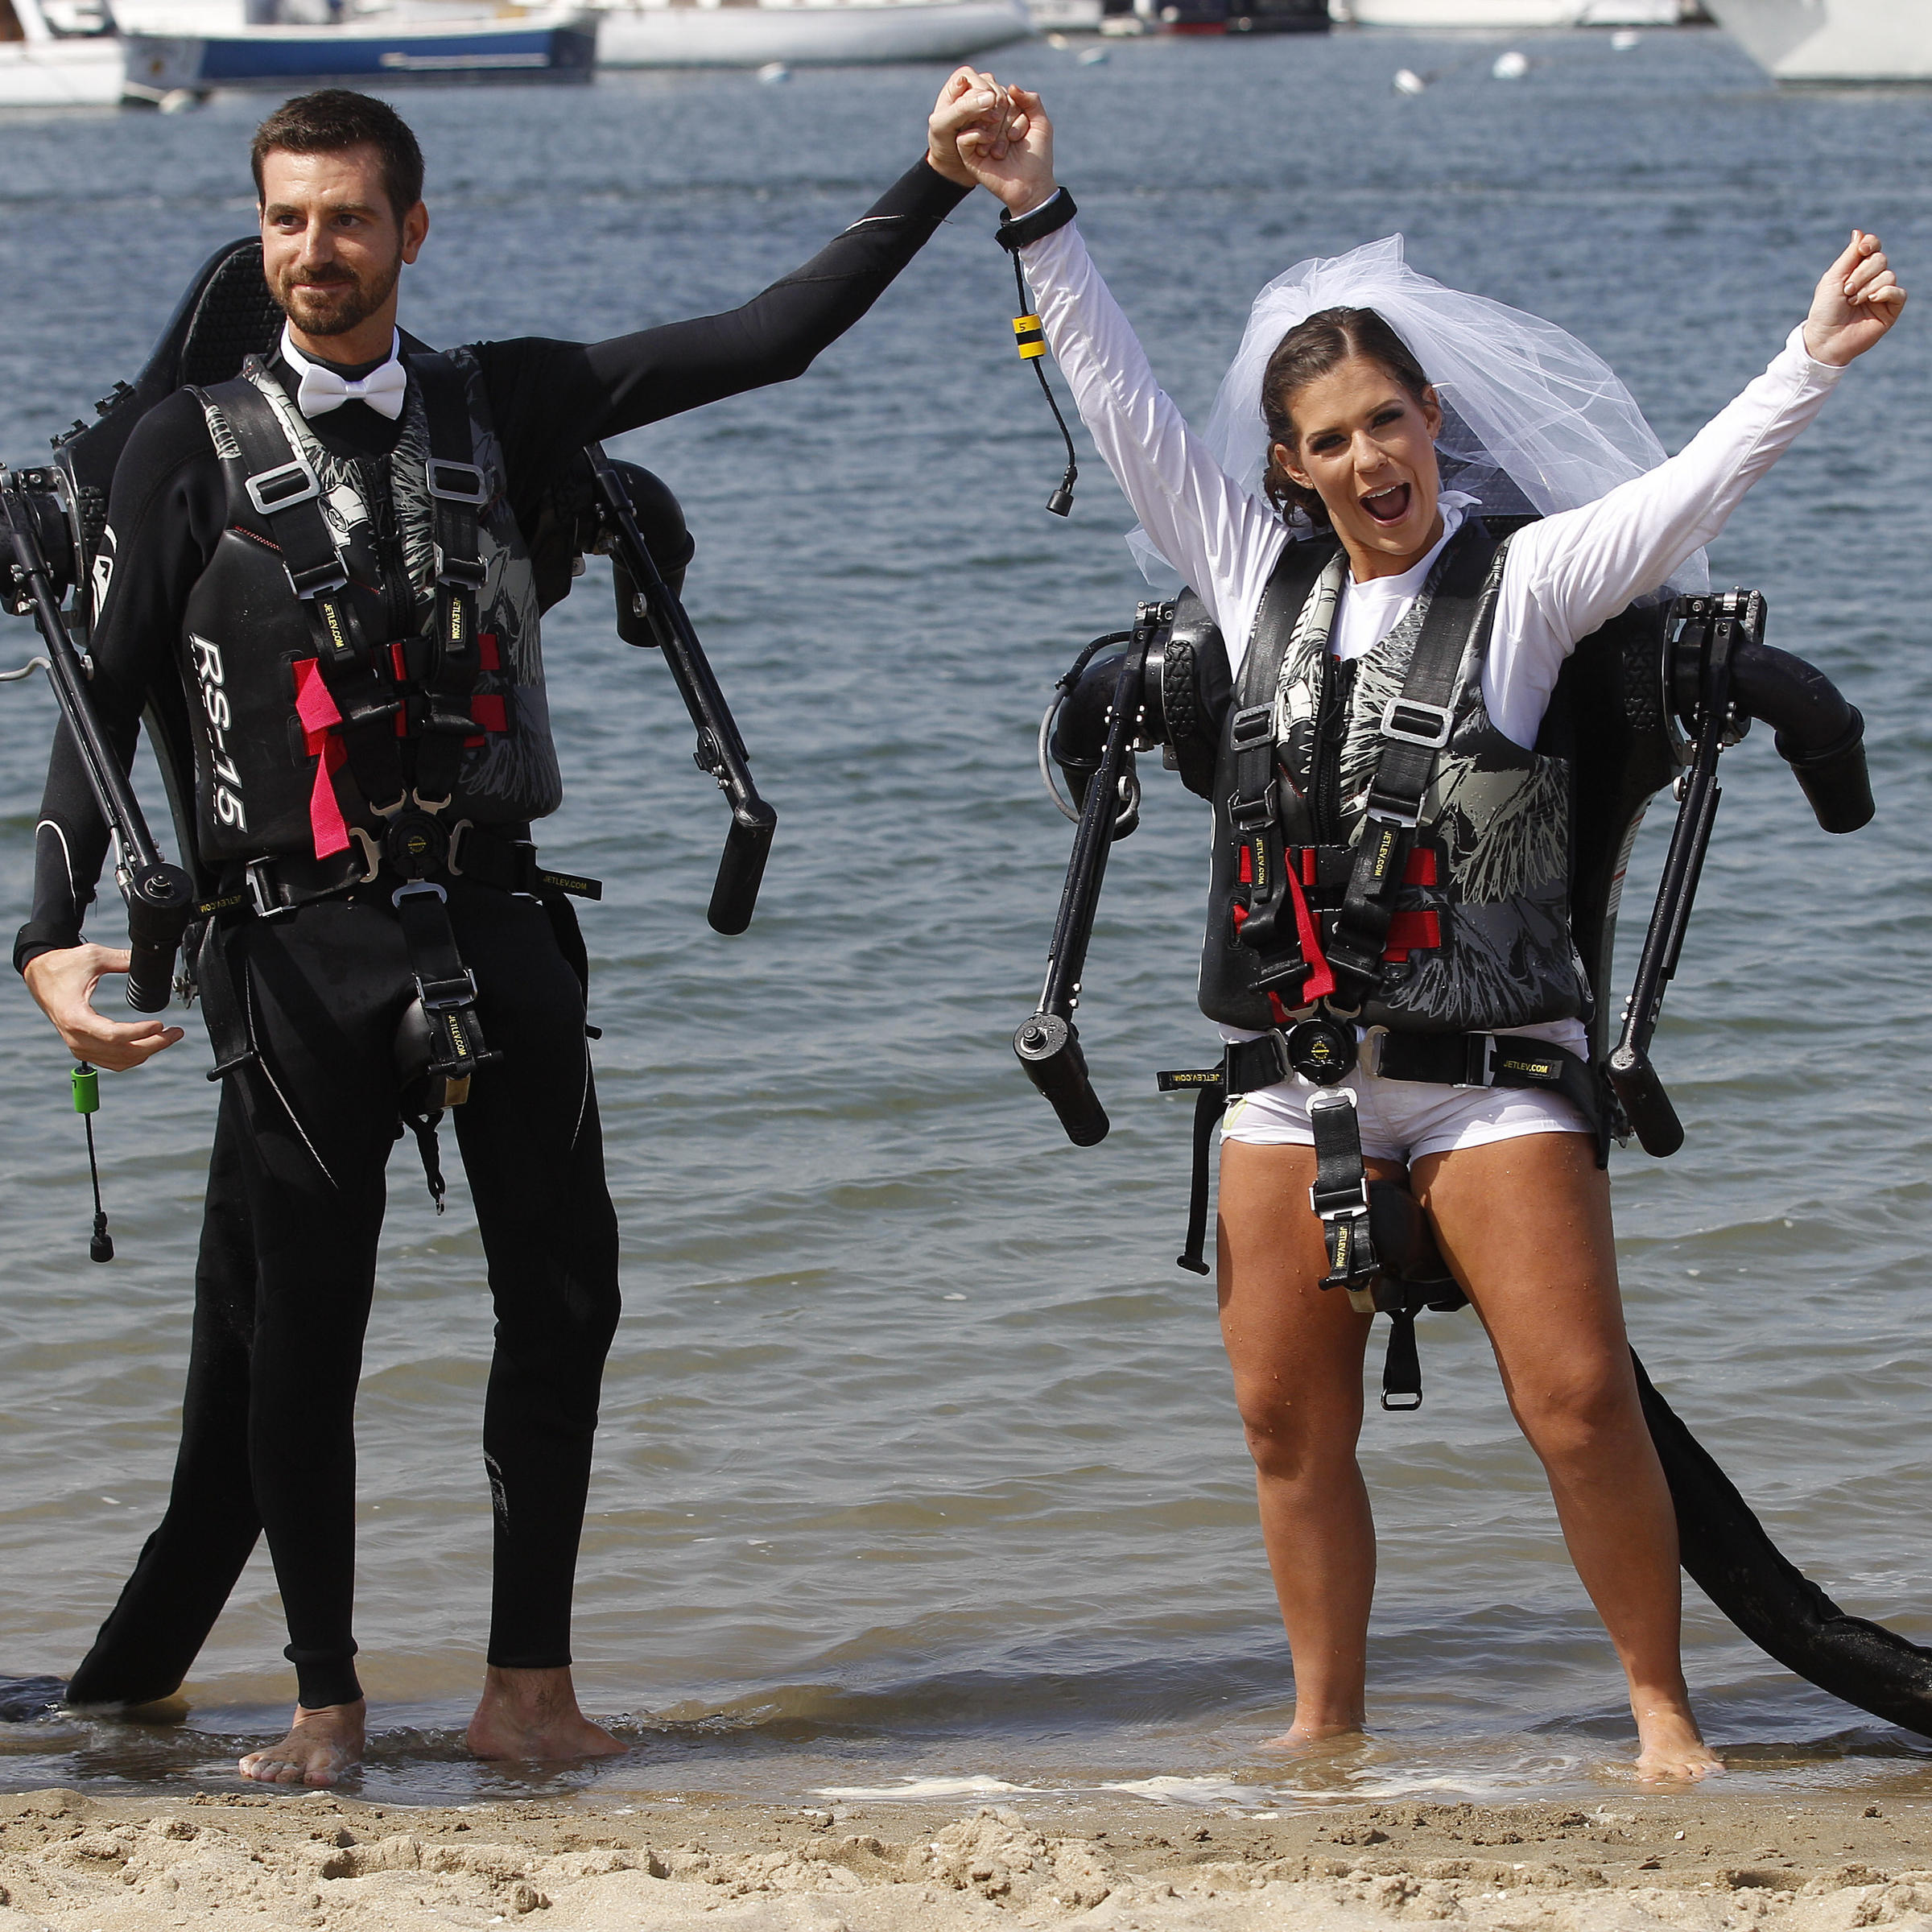 Grant And Amanda Engler Celebrate In Jet Packs At Their Wedding Ceremony 2017 Newport Beach Calif